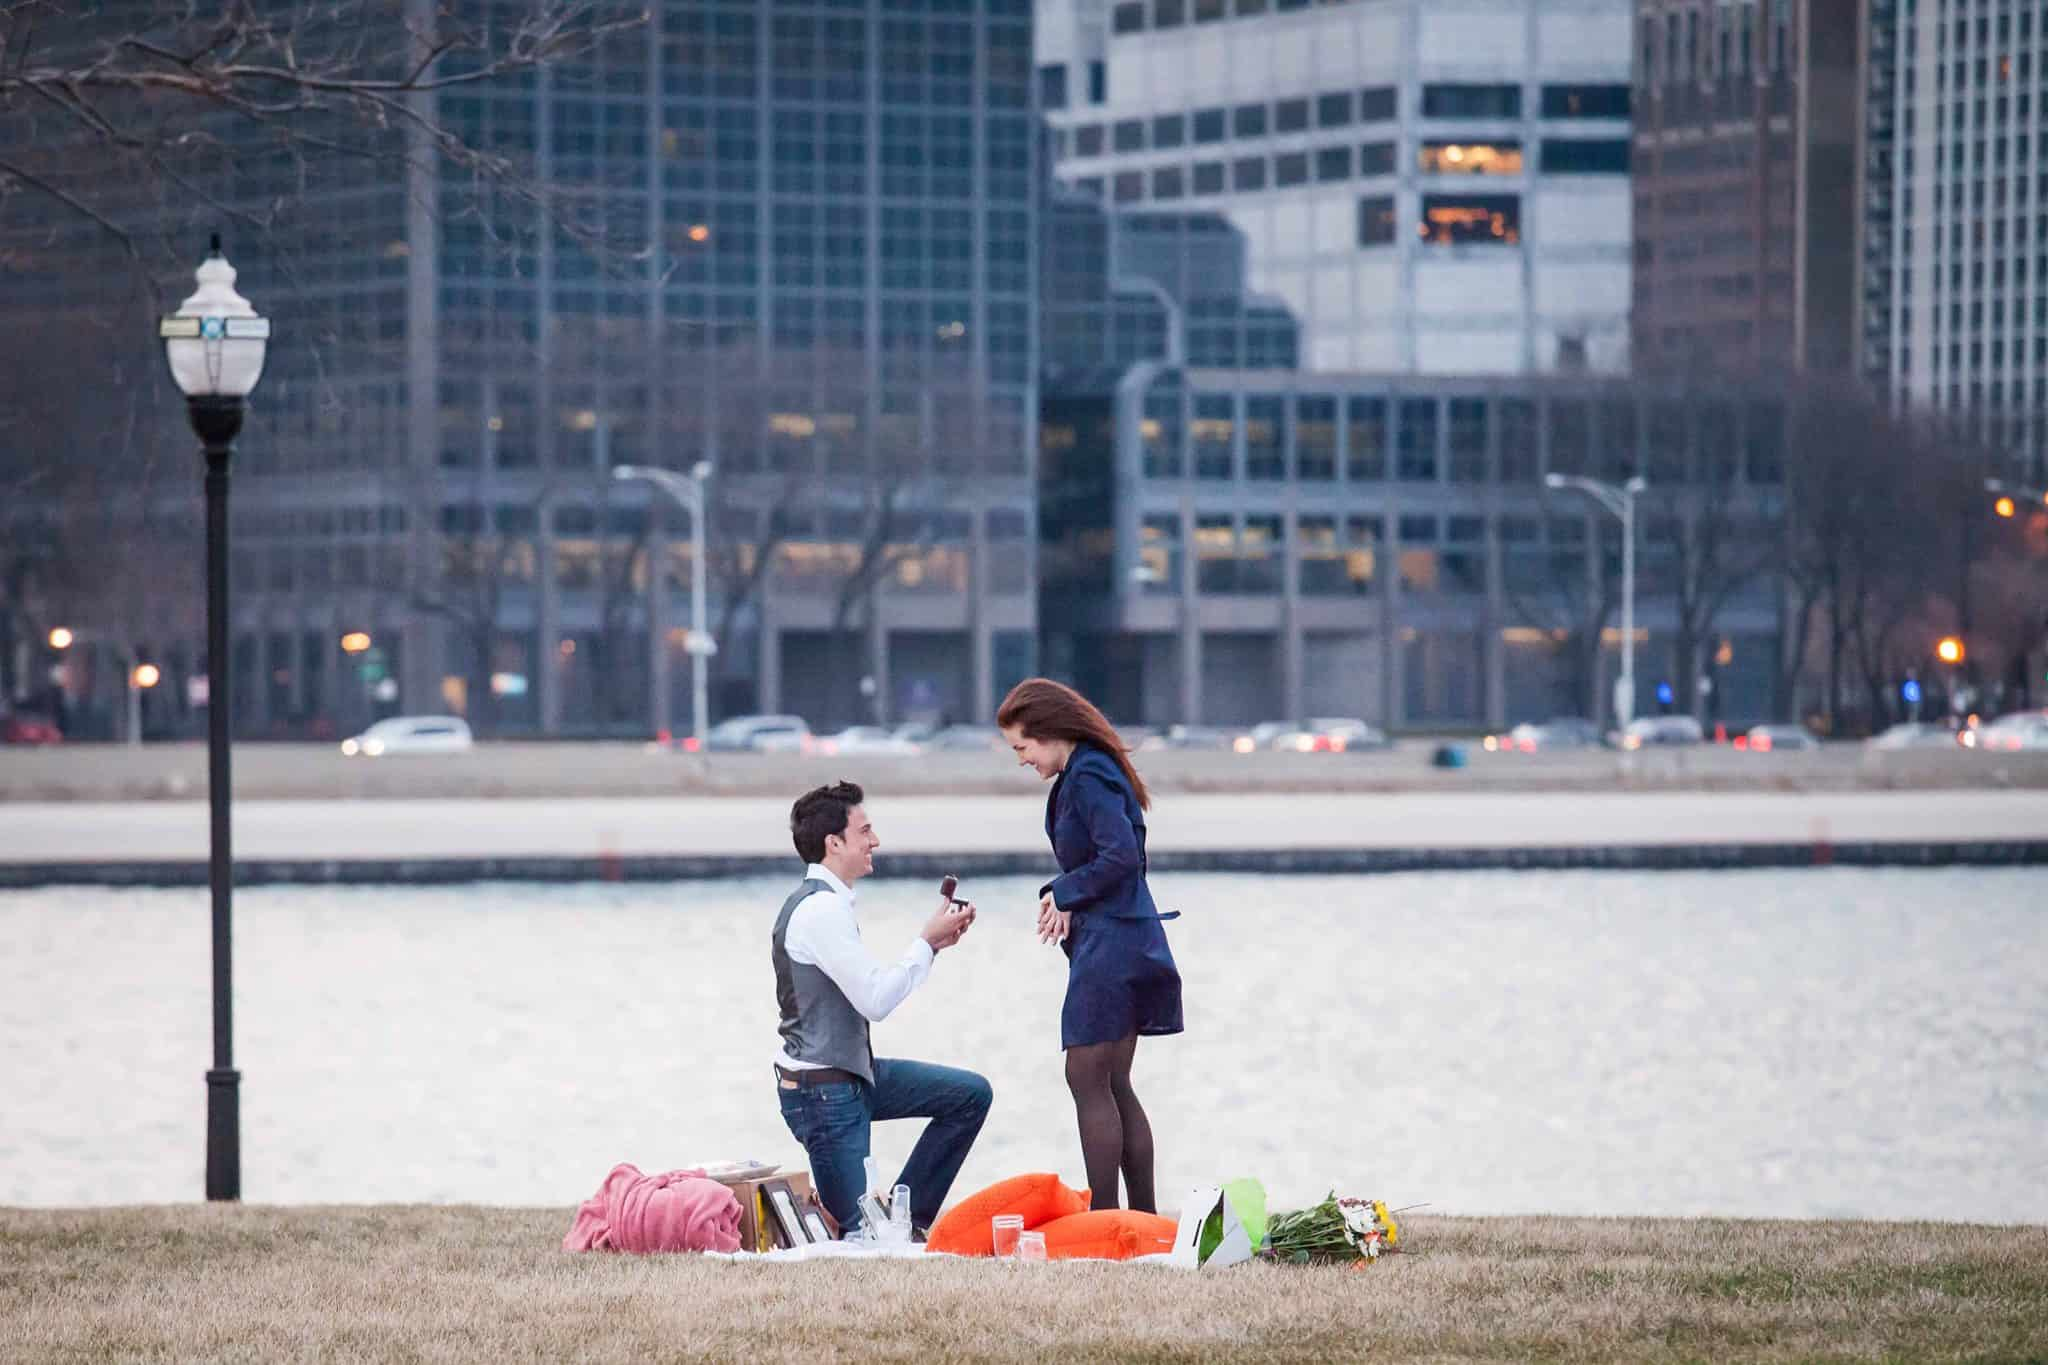 chicago-picnic-proposal-idea.jpg